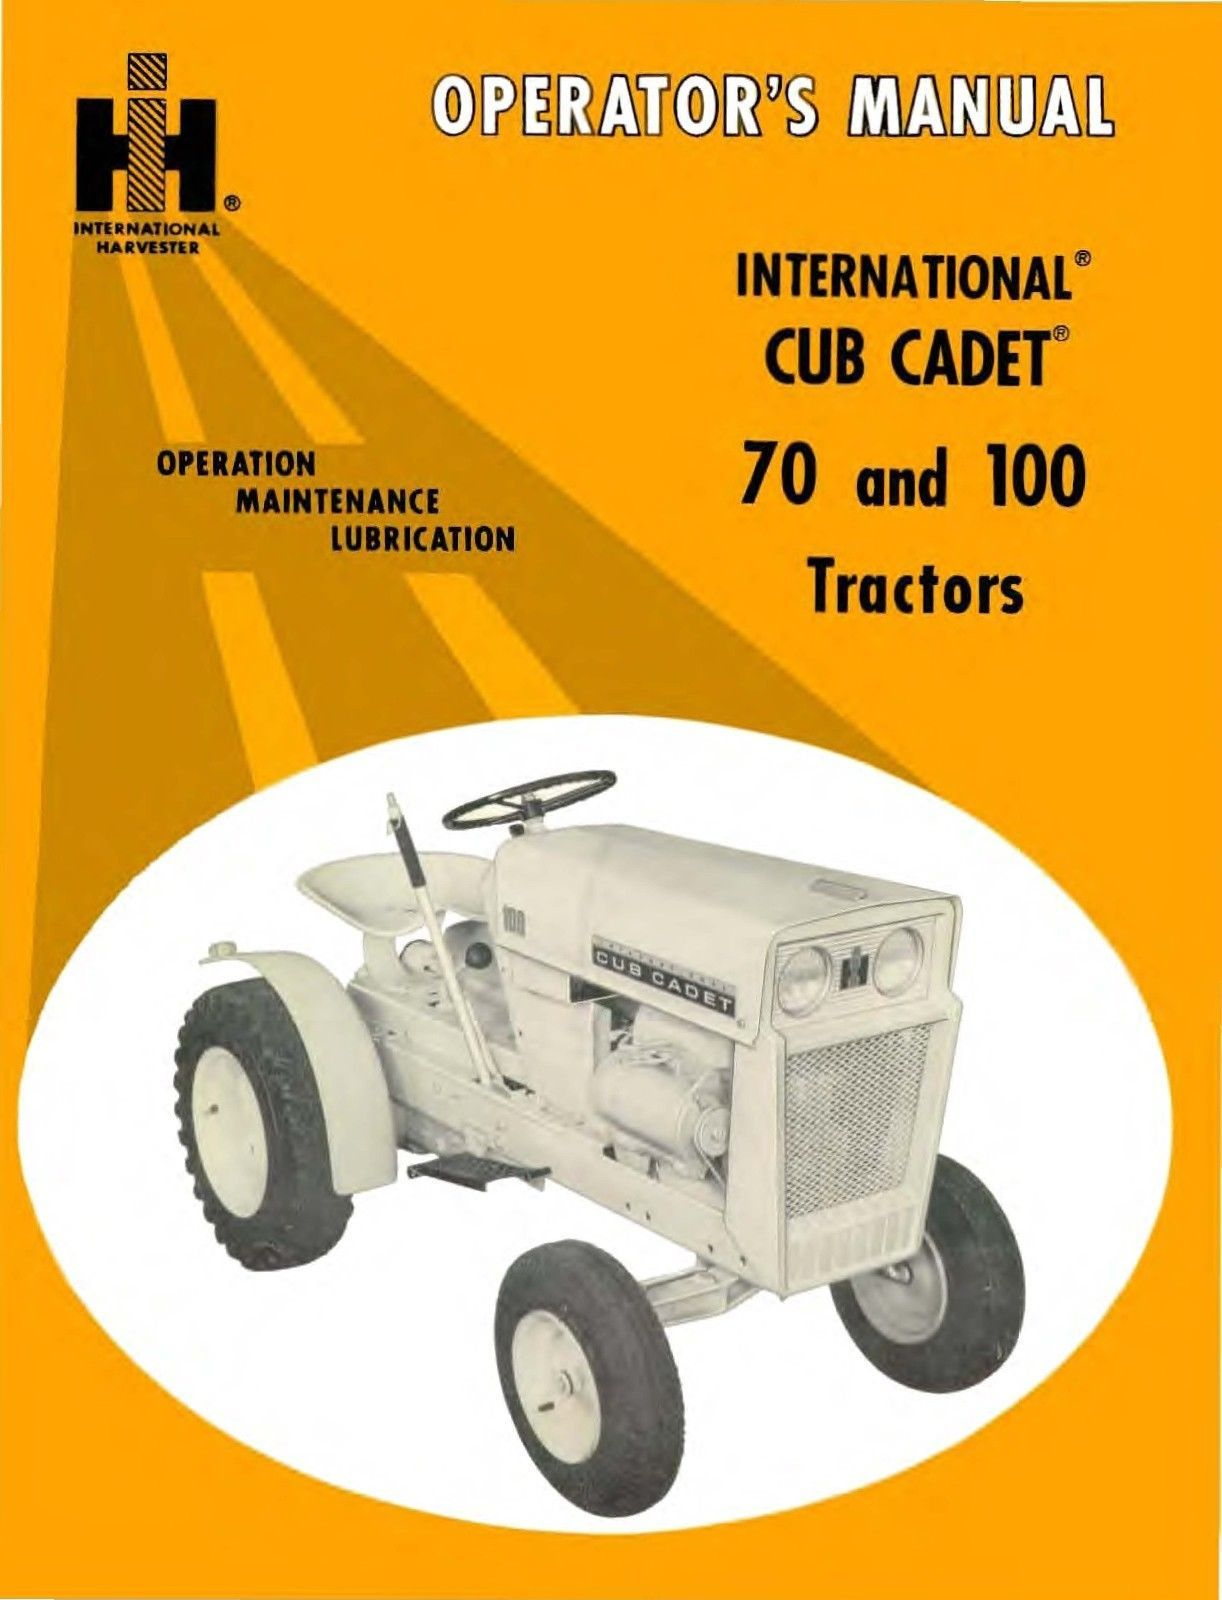 IH Cub Cadet 70-100 Lawn Tractor Manuals Combo Package